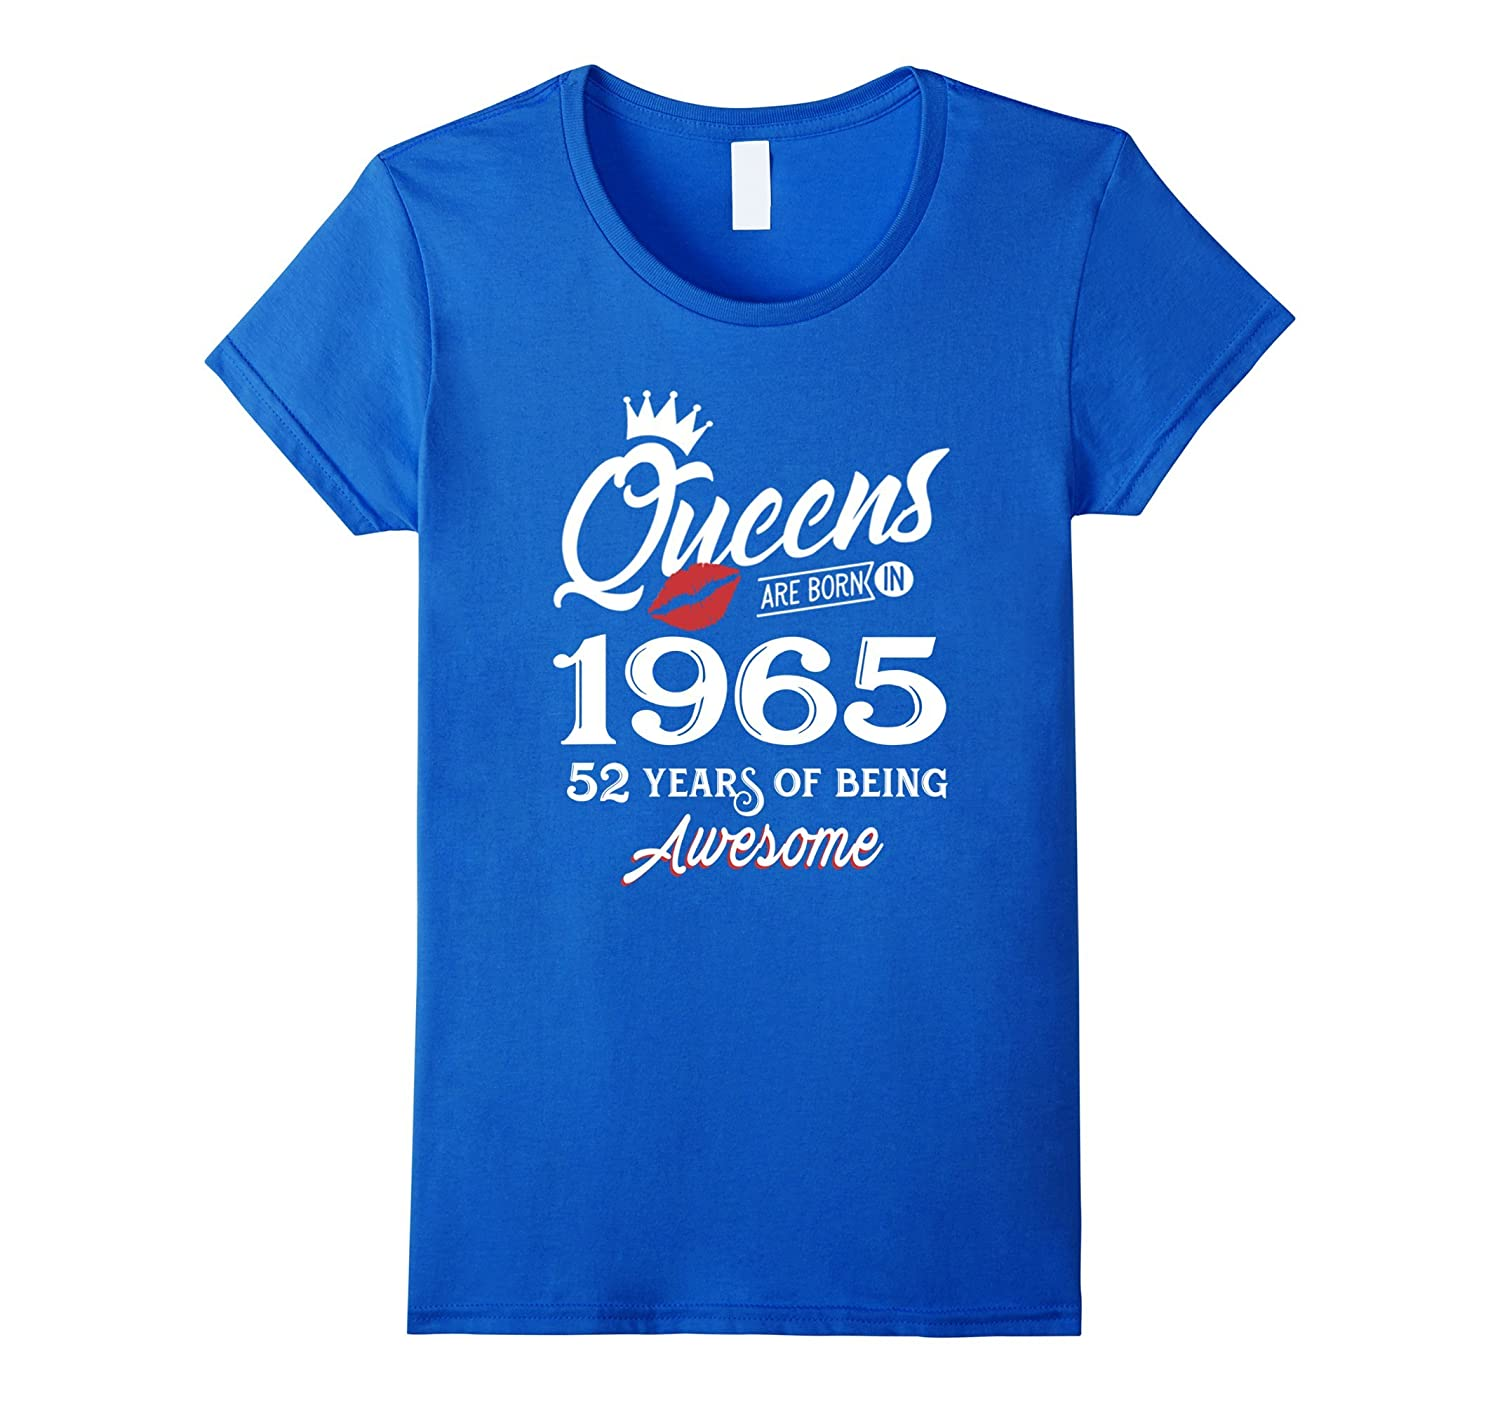 Womens 52th Birthday TShirt Queens are born in 1965 52 year Awesome-FL